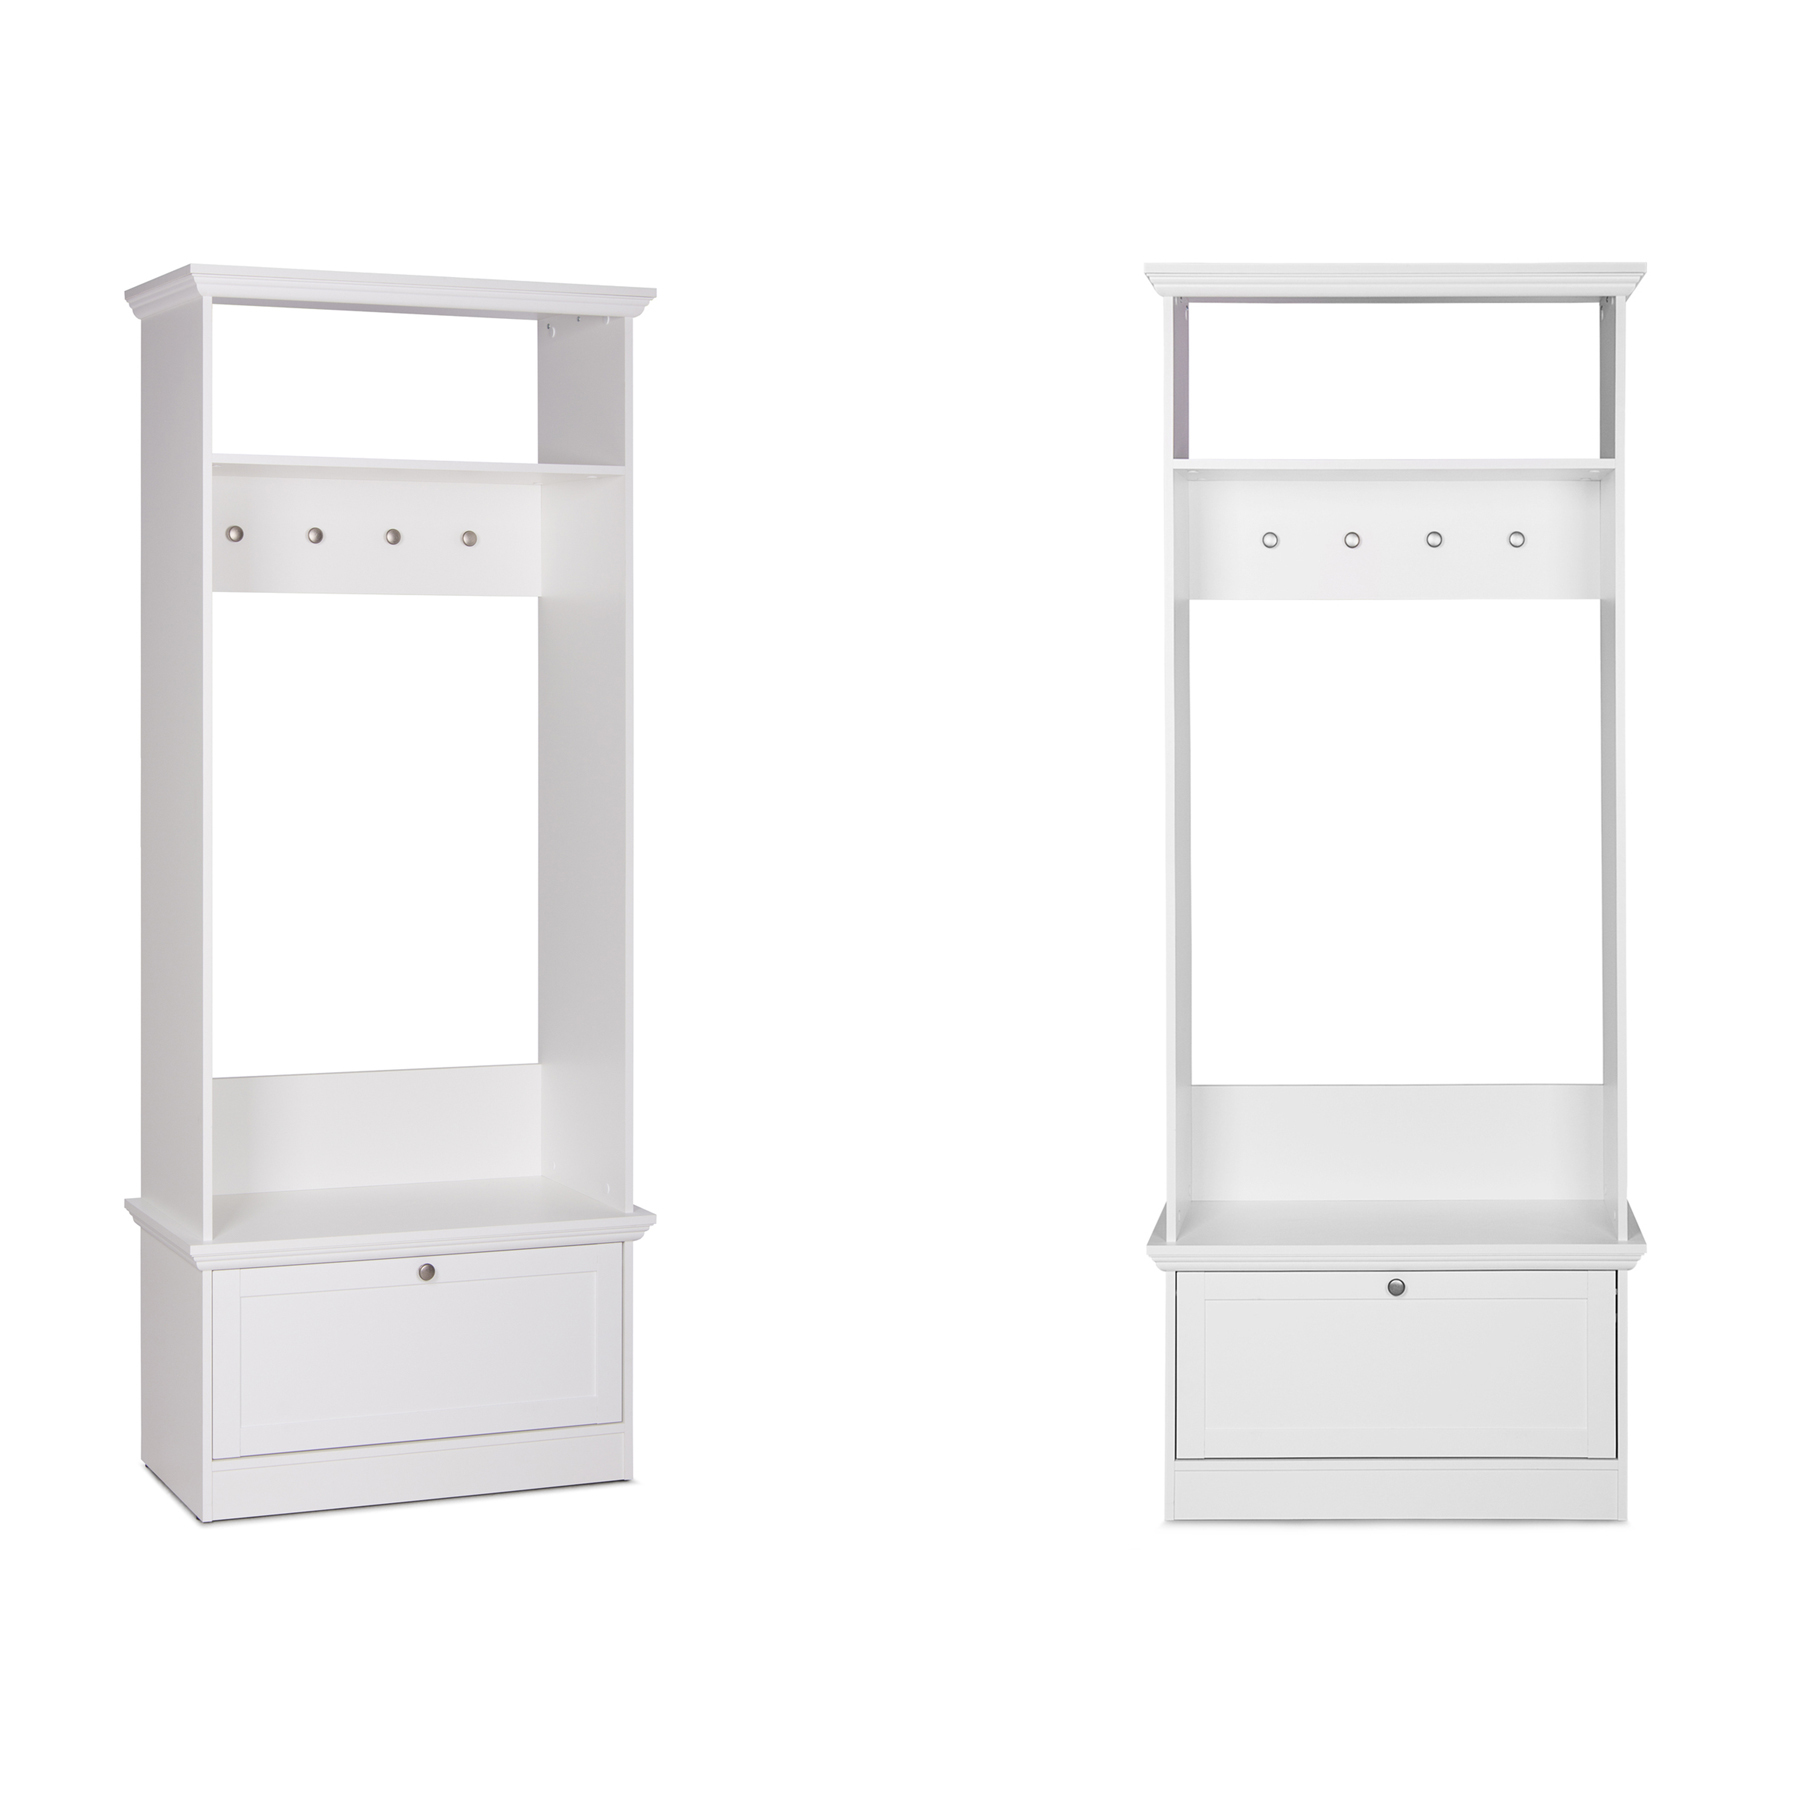 klassische garderobe provence wei 80cm im landhausstil. Black Bedroom Furniture Sets. Home Design Ideas